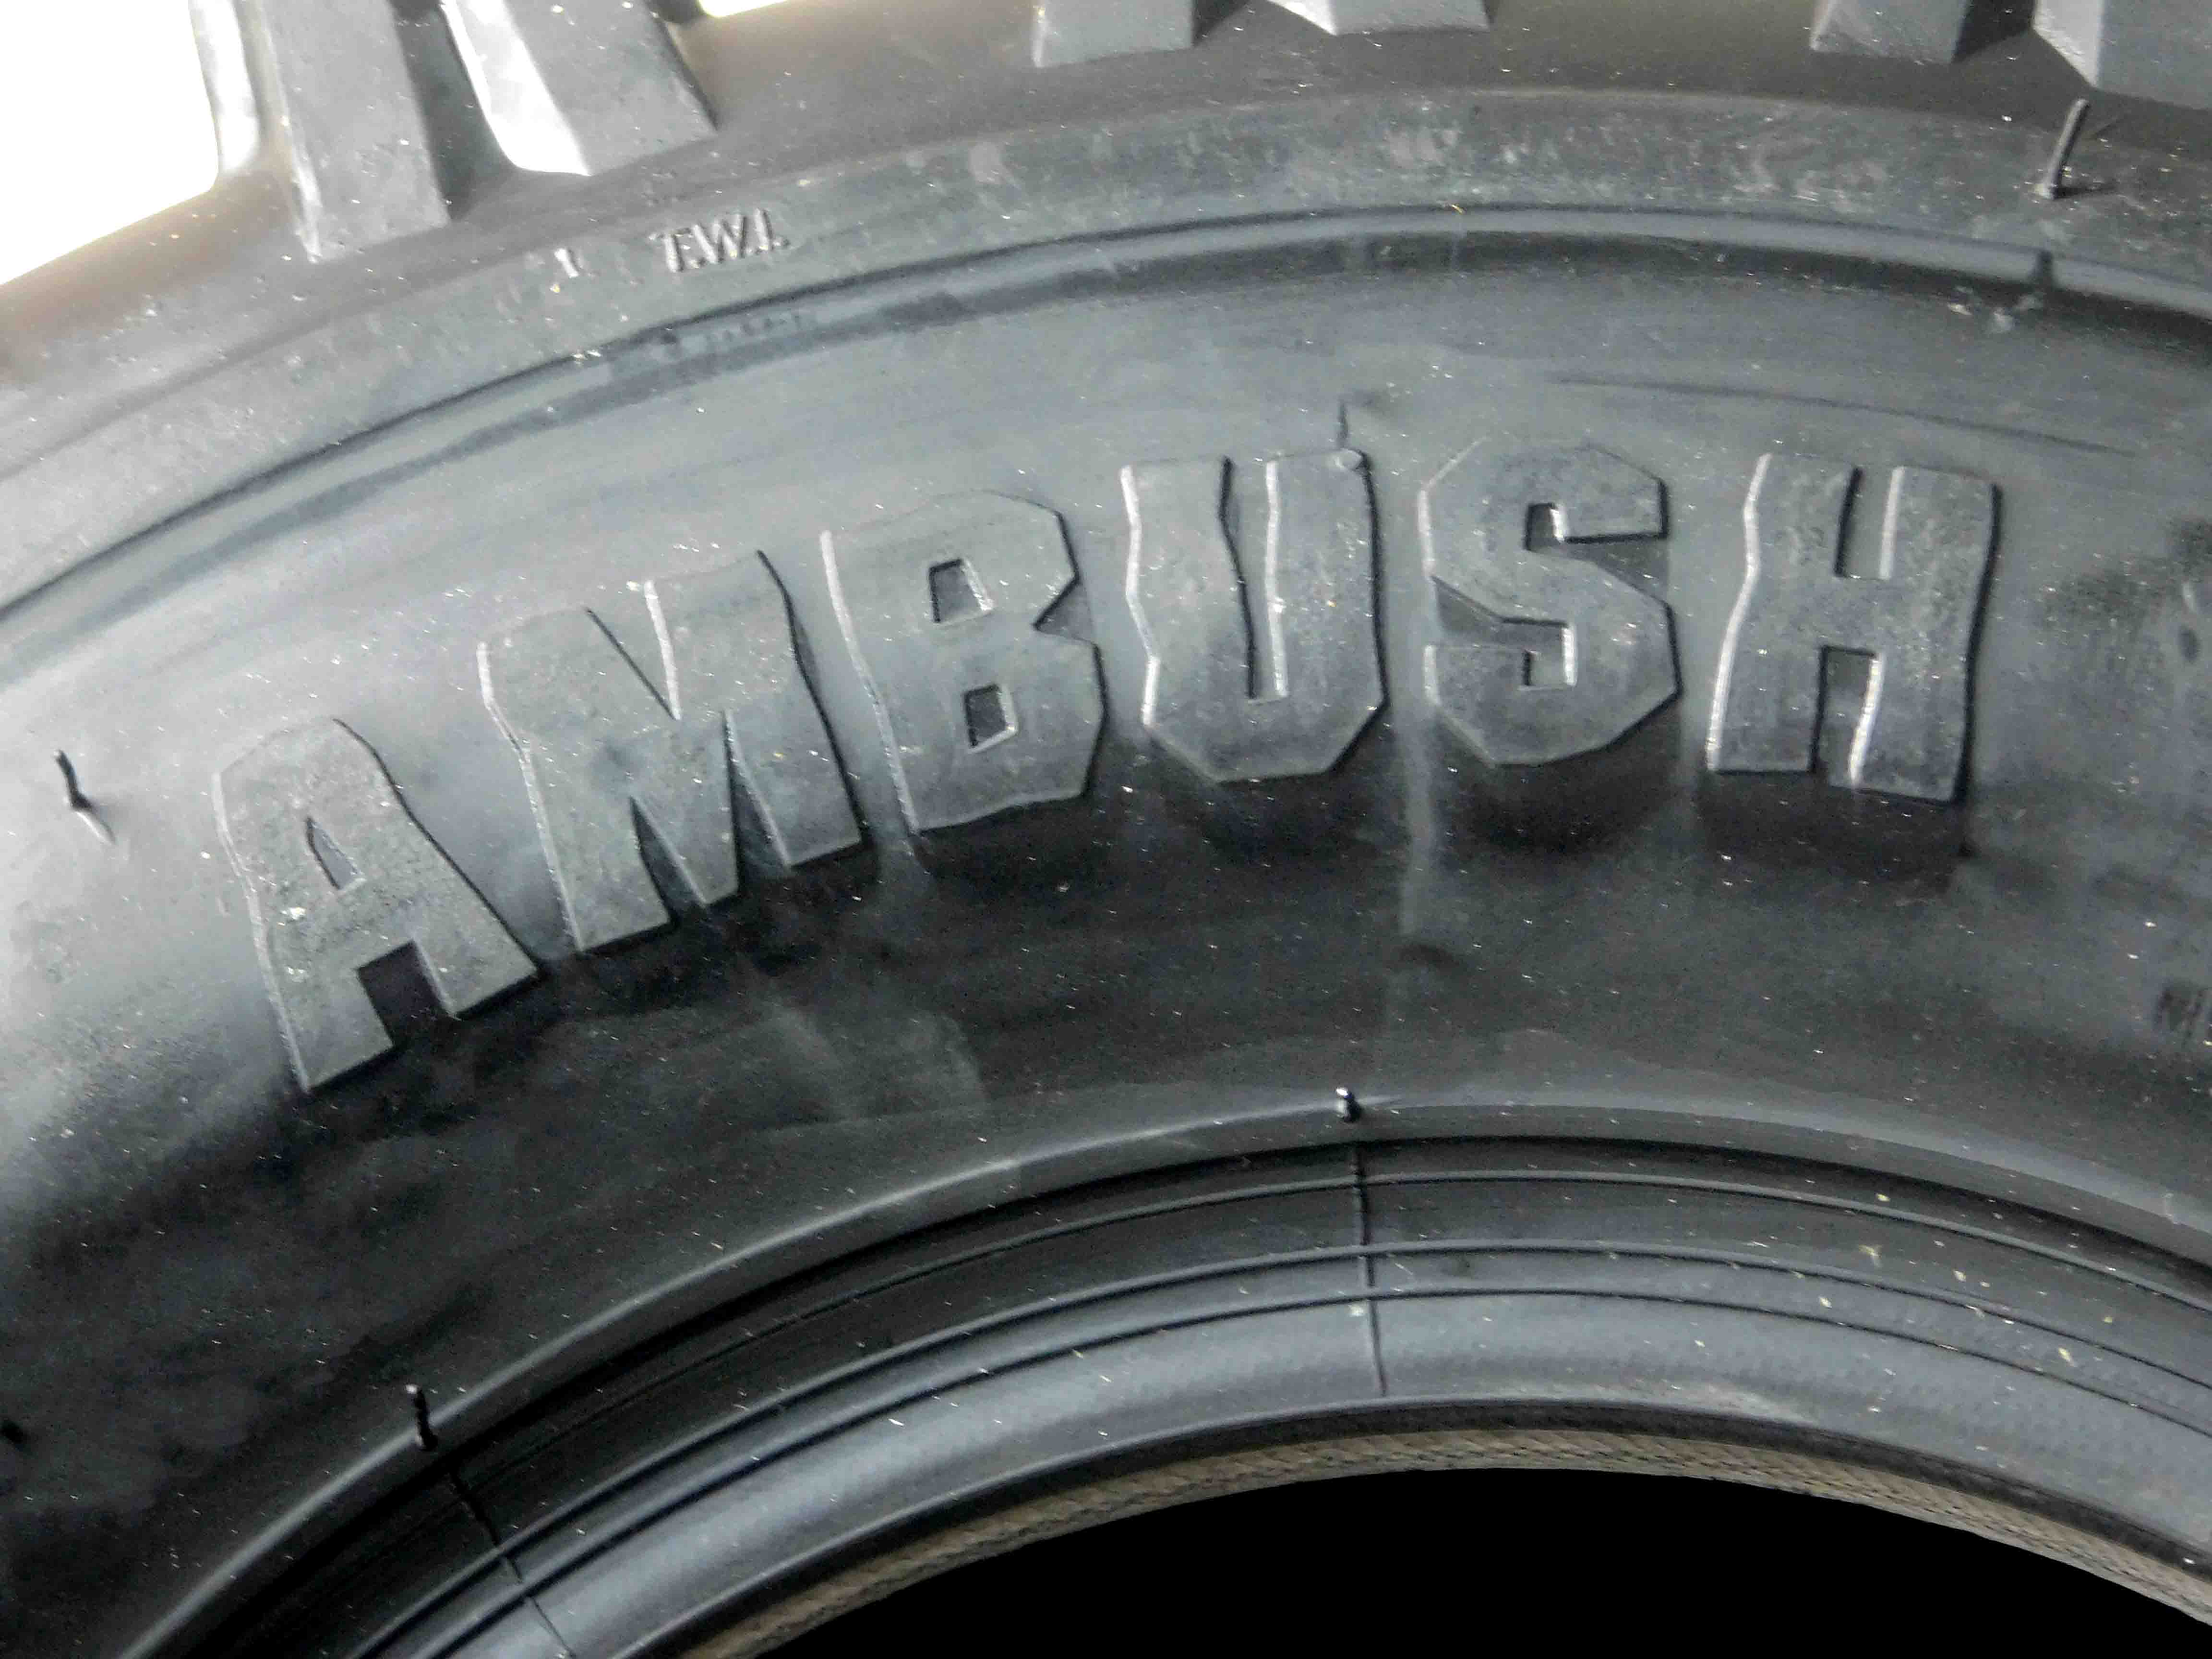 Ambush-20x11-9-ATV-Tire-2-Pack-Rear-4Ply-image-3